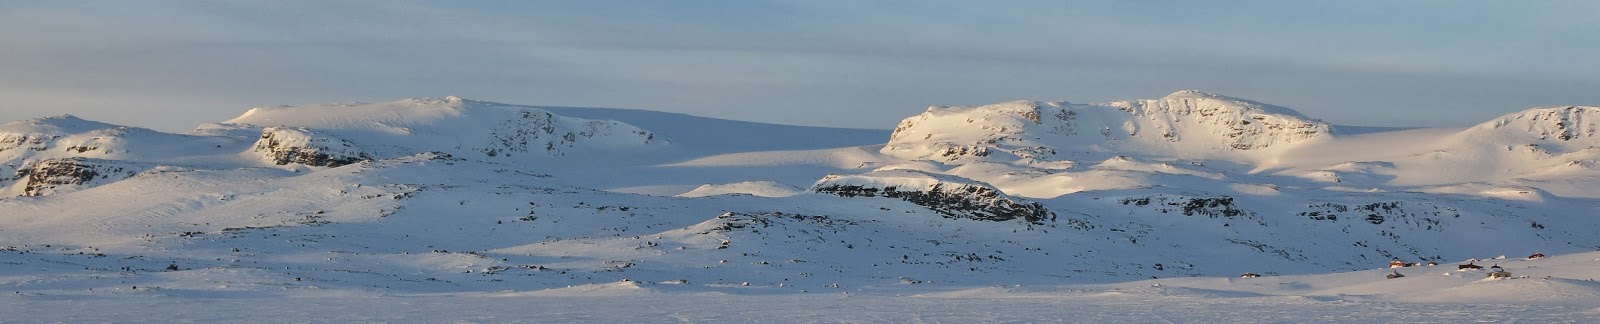 Panoramic view of Hardangerjokulen Finse